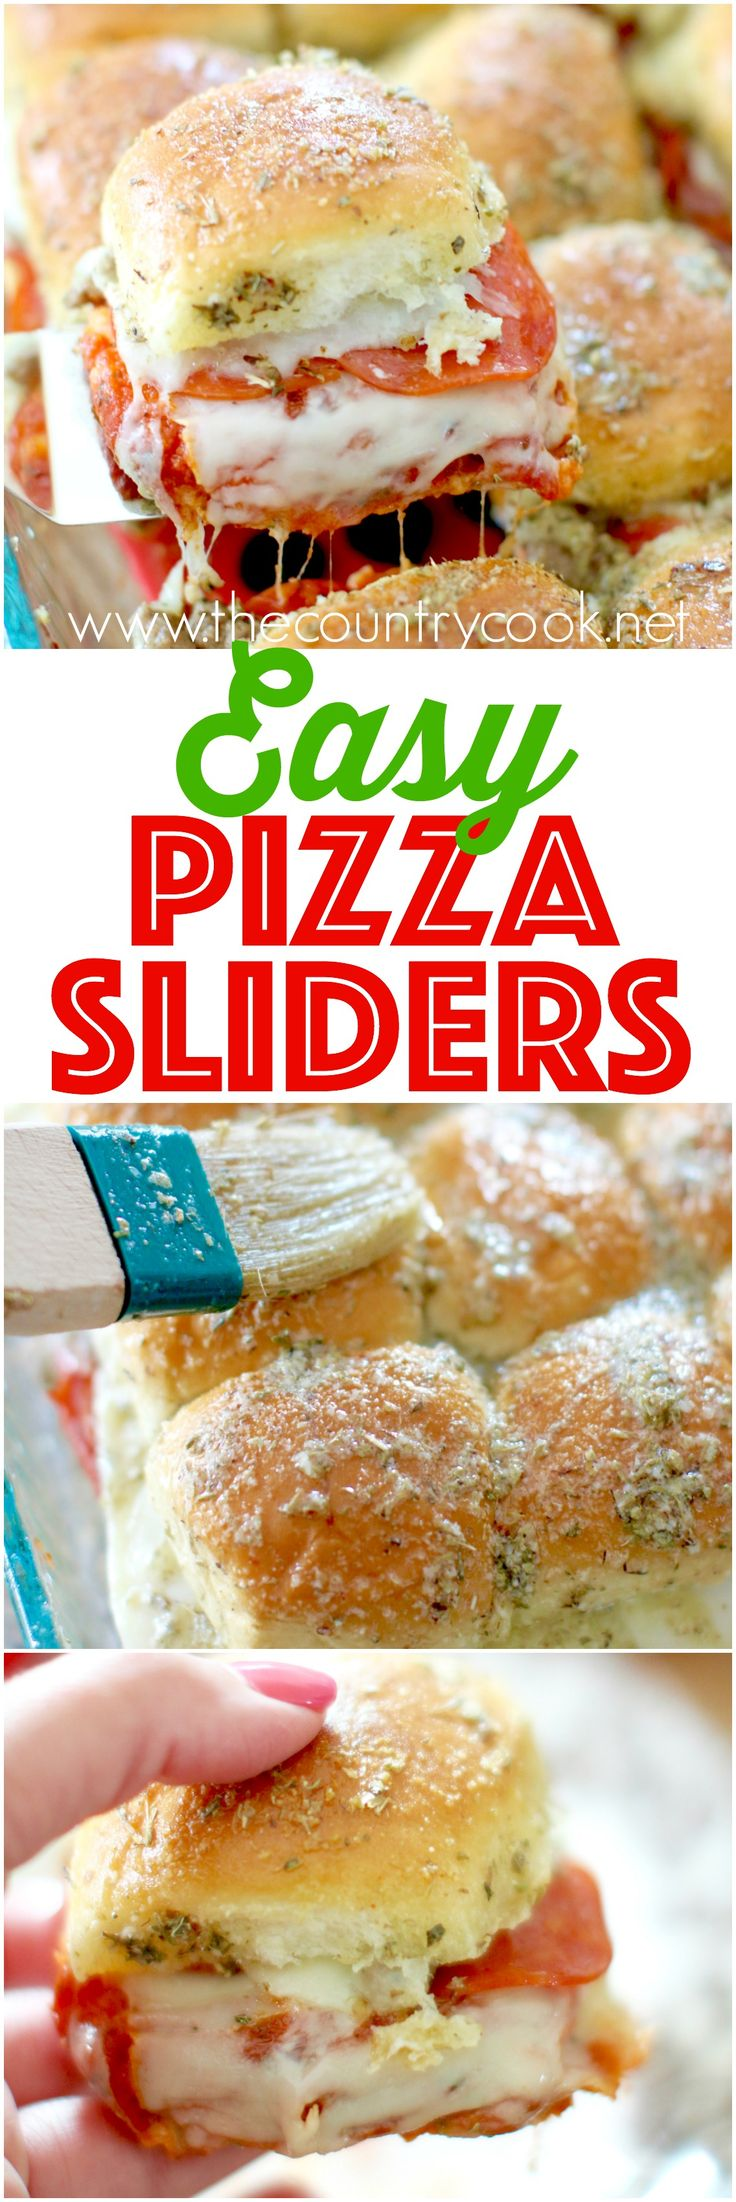 Pizza Pull-Apart Sliders recipe from The Country Cook. Cheesy, meaty filling and the most amazing herbed butter topping. You can't eat just one! #brightbites #ad